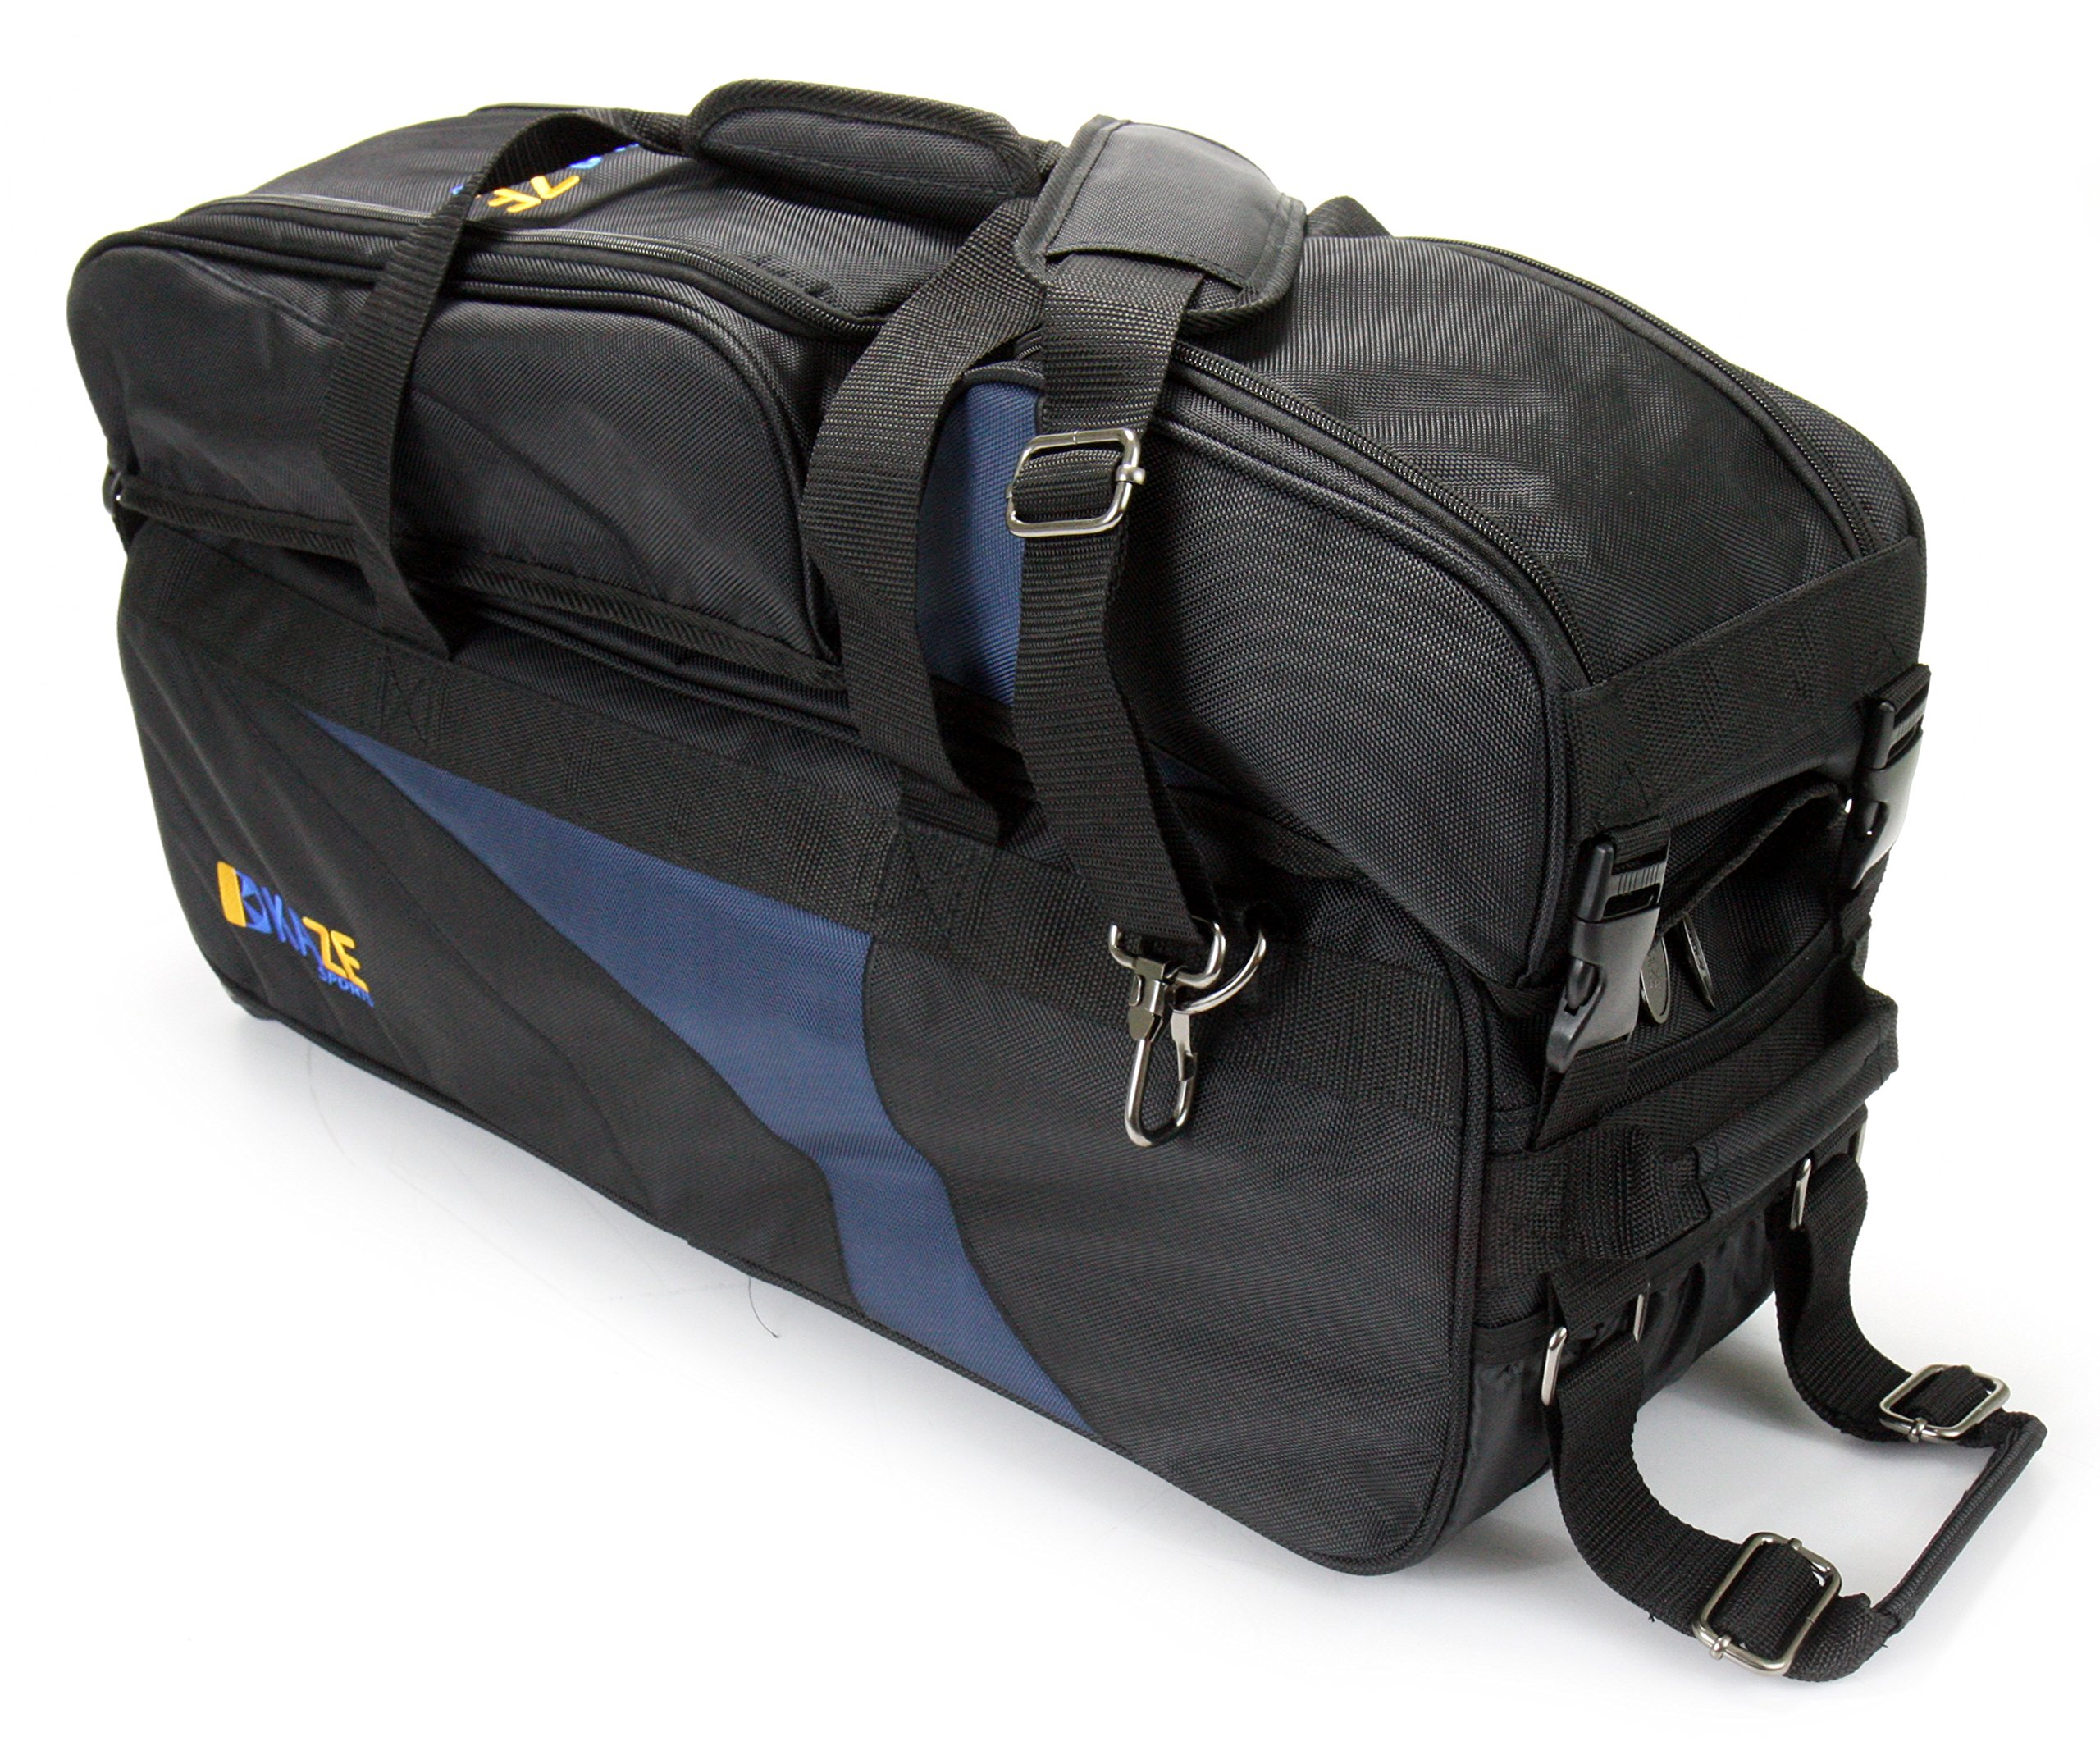 KAZE SPORTS 3 Ball Deluxe Bowling Tournament Roller Tote with Detachable Shoe & Accessory Bag, Black